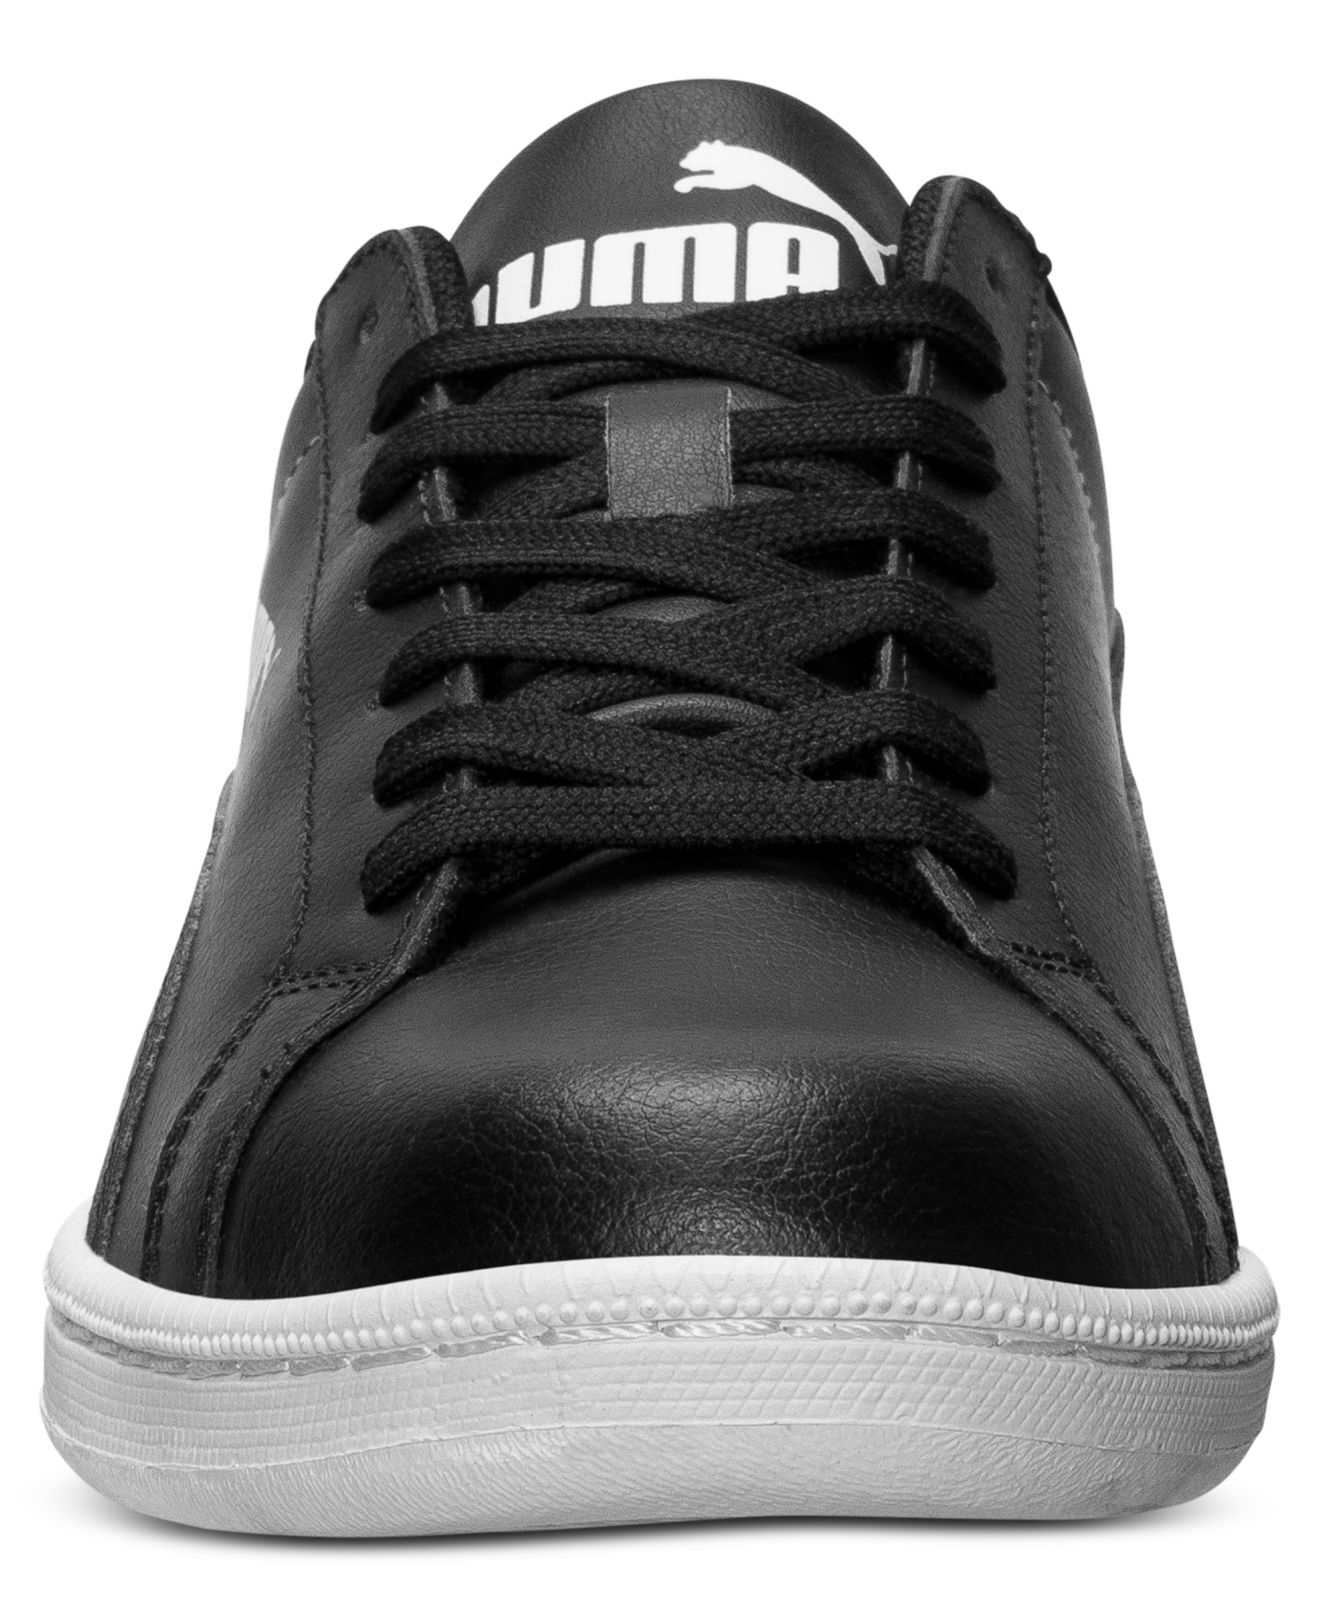 Macy S Vans Black Leather Mens Shoes